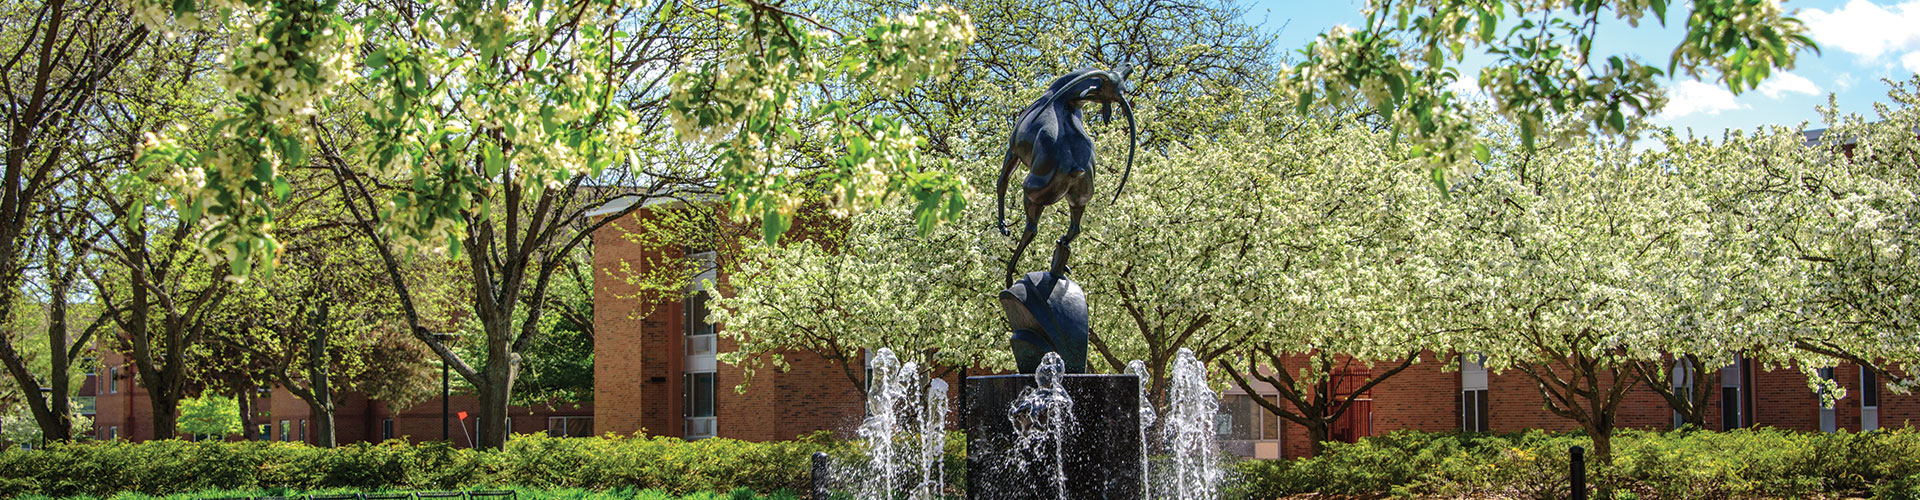 Campus courtyard, fountain and statue